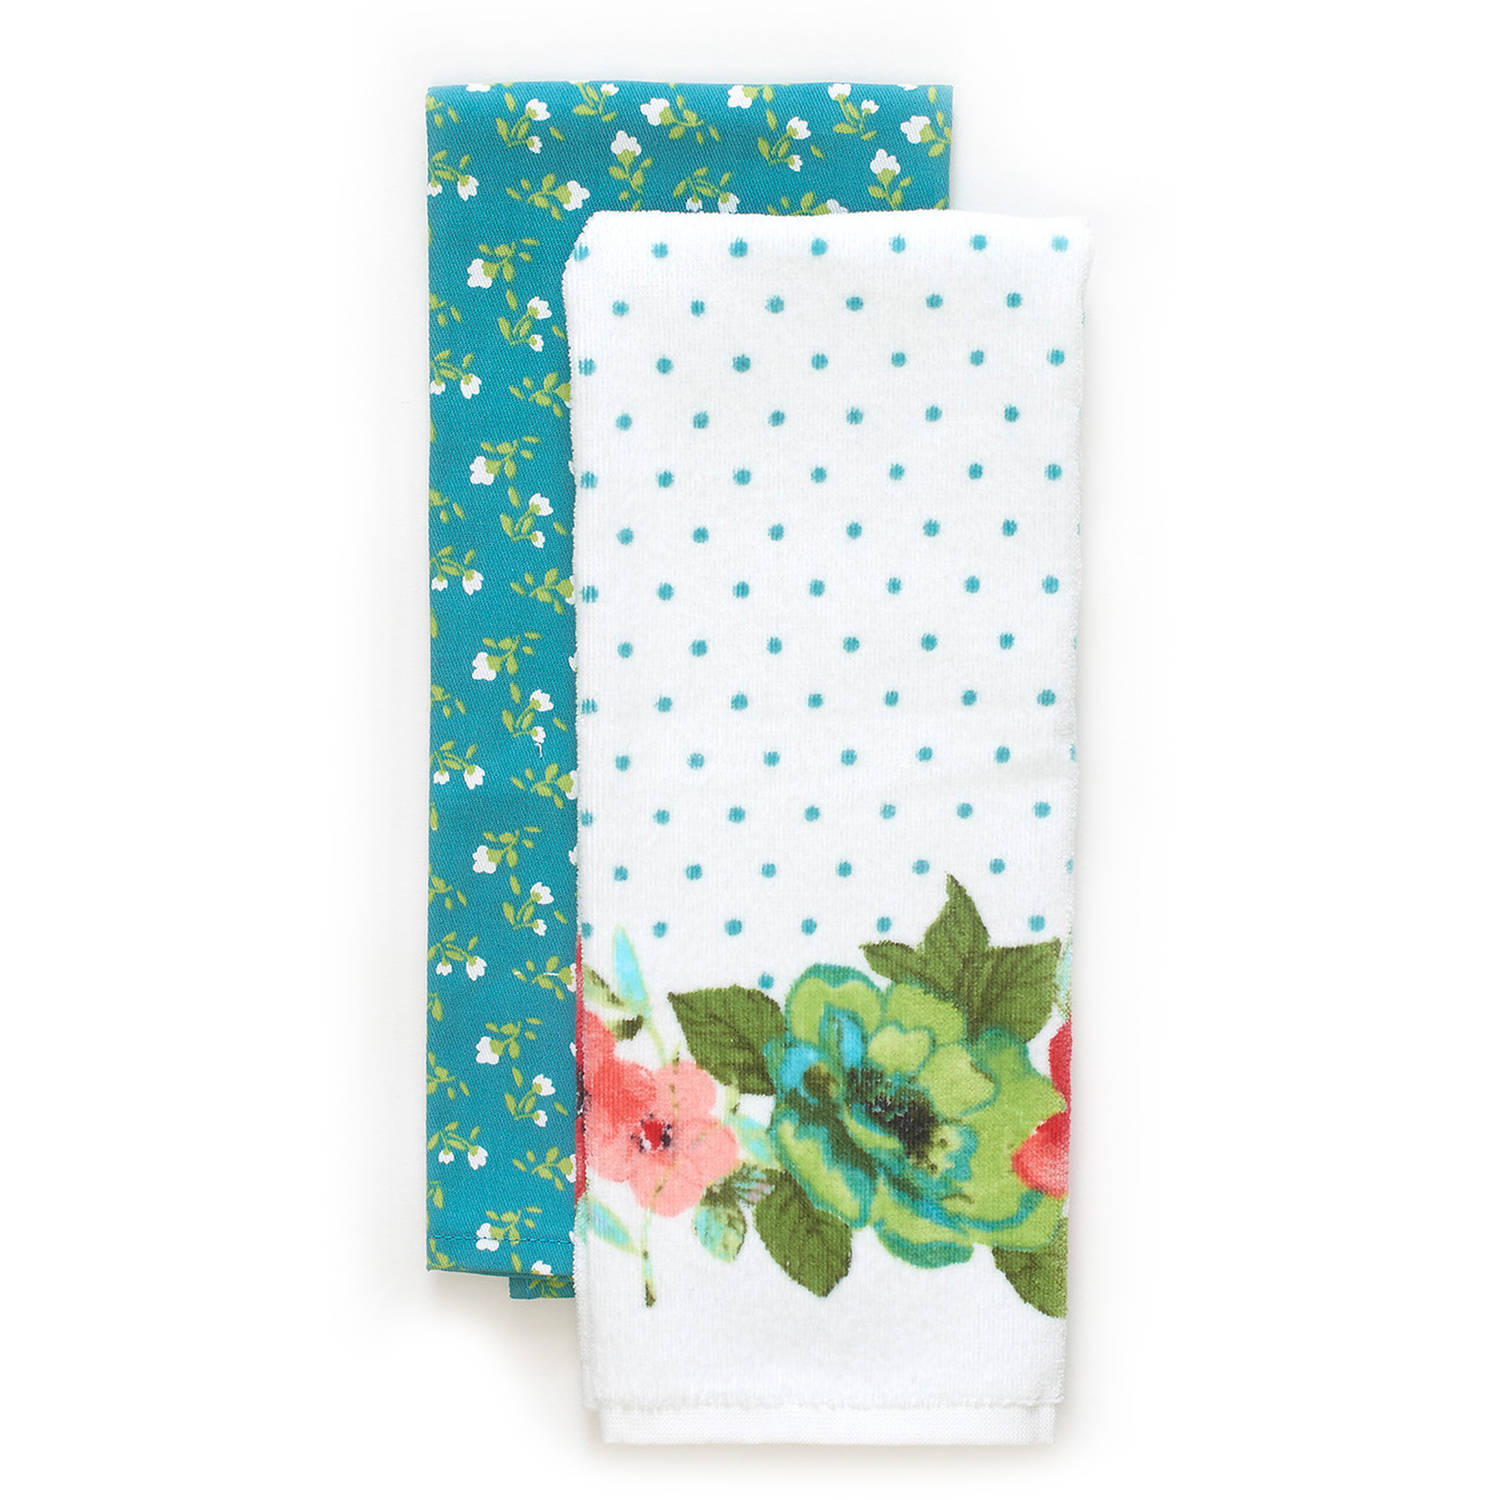 The Pioneer Woman Vintage Bloom 2-Pack Kitchen Towel